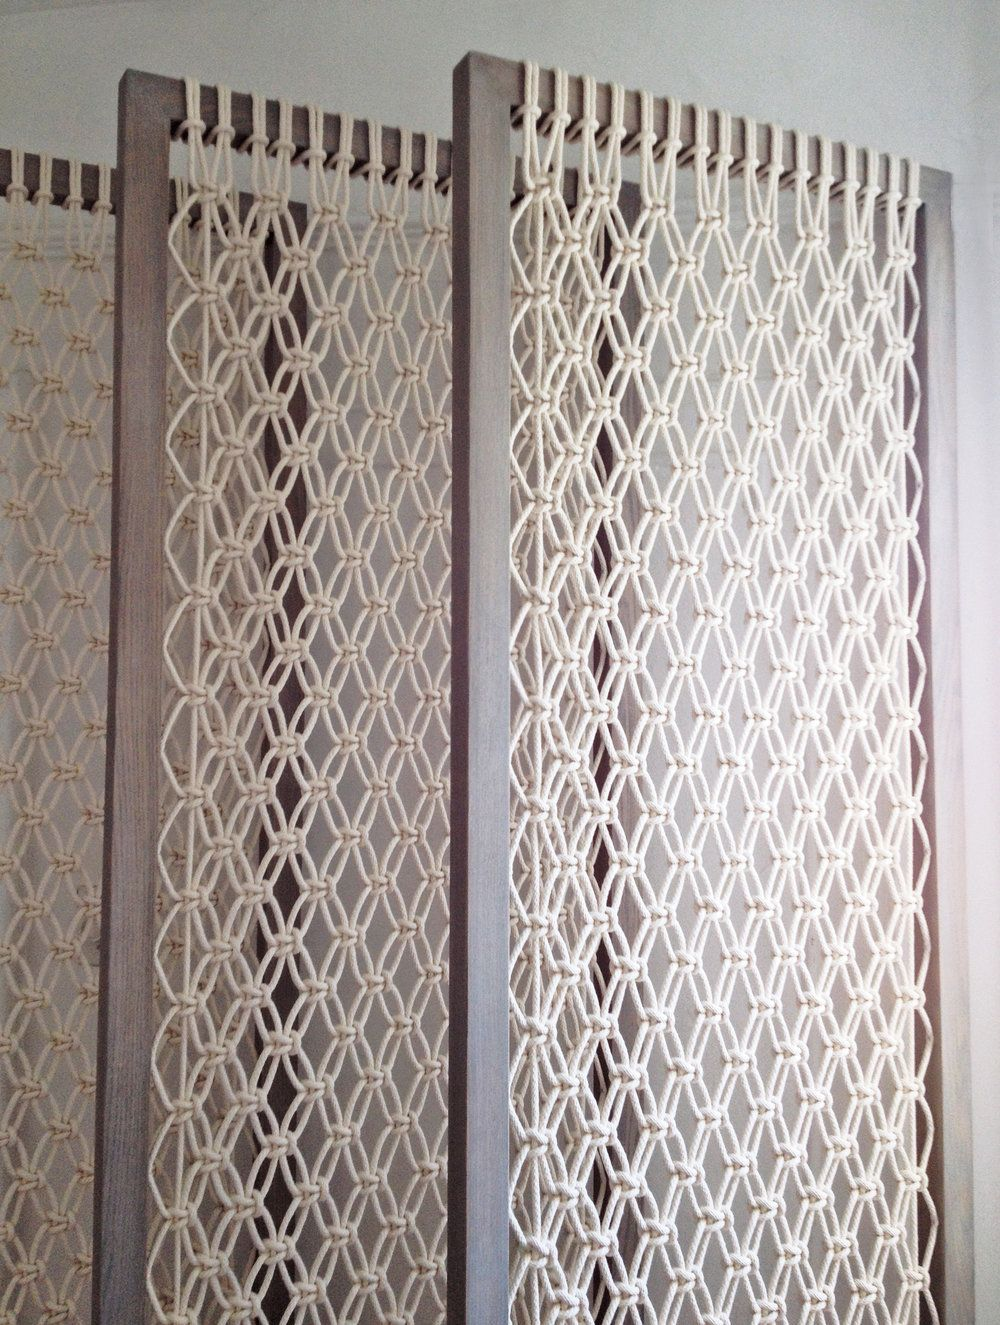 MACRAME ROOM DIVIDER  — MACRO MACRAMÉ is part of Macrame - FOR CUSTOM SIZE PRICING AND ORDERS PLEASE USE THE CONTACT FORMCREATE  BREEZY SEPARATION WITH THESE DELICATE AND BRIGHT MODERN MACRAME  SCREENS THIS LISTING IS FOR A SET OF 3 SCREENS  DETAILS      MATERIALS THIN COTTON CORD, OAK FRAMES      DIMENSIONS EACH FRAME  30  WIDE, 80  HIGH